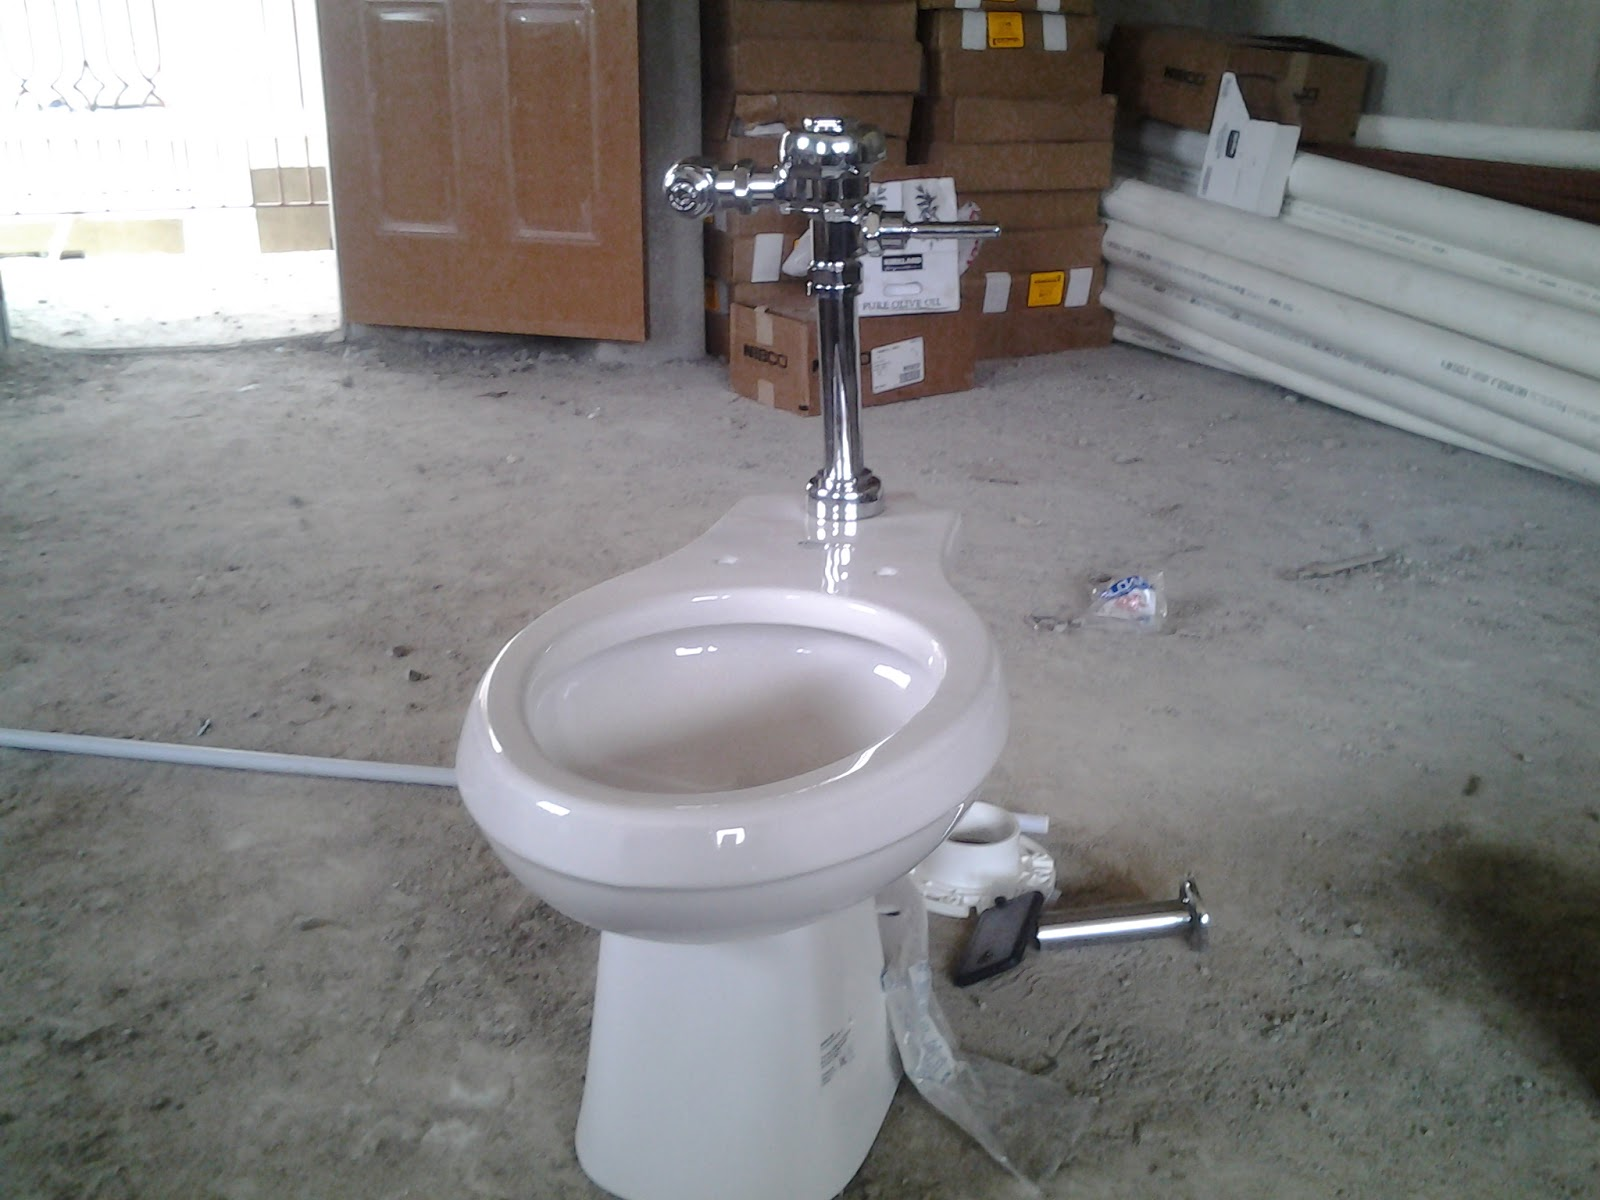 The Newly Imported American Tankless Water Closet System At Ikeja Lagos Nigeria